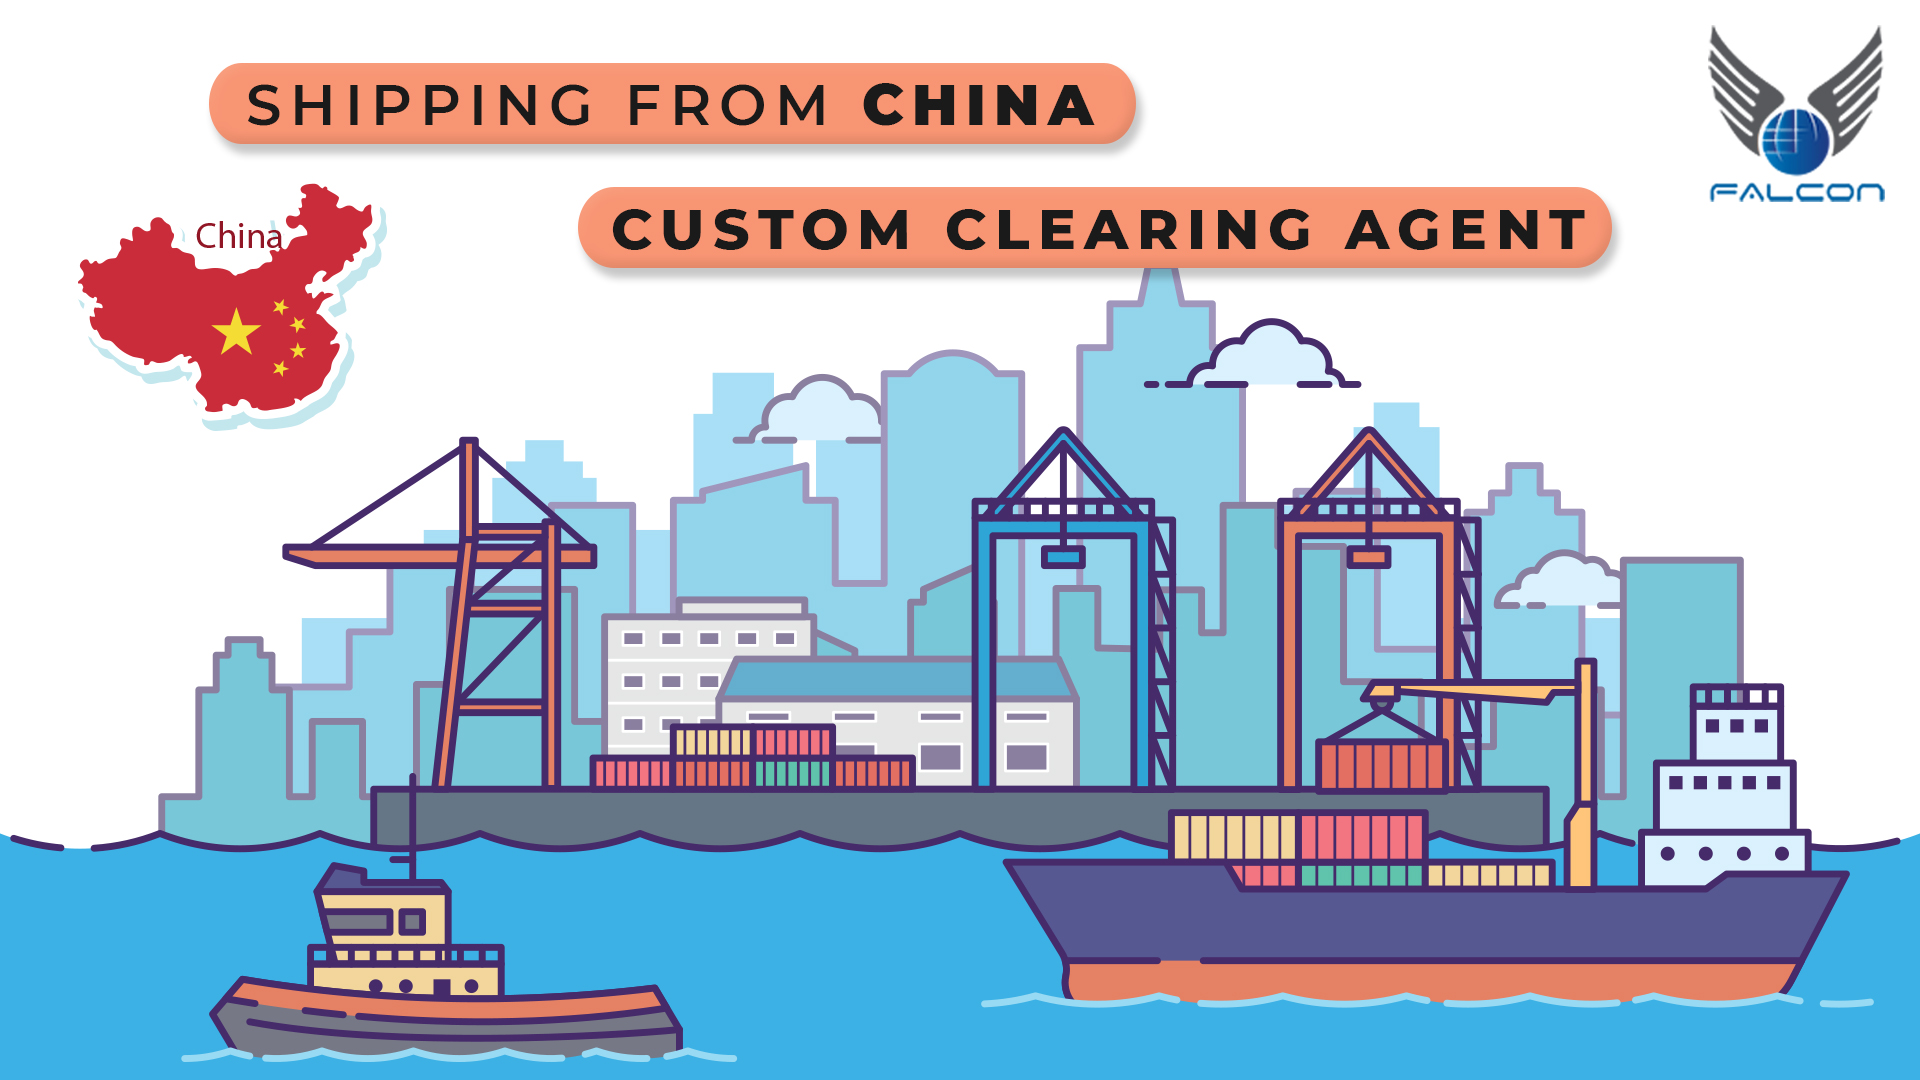 shipping from china and custom clearing agent